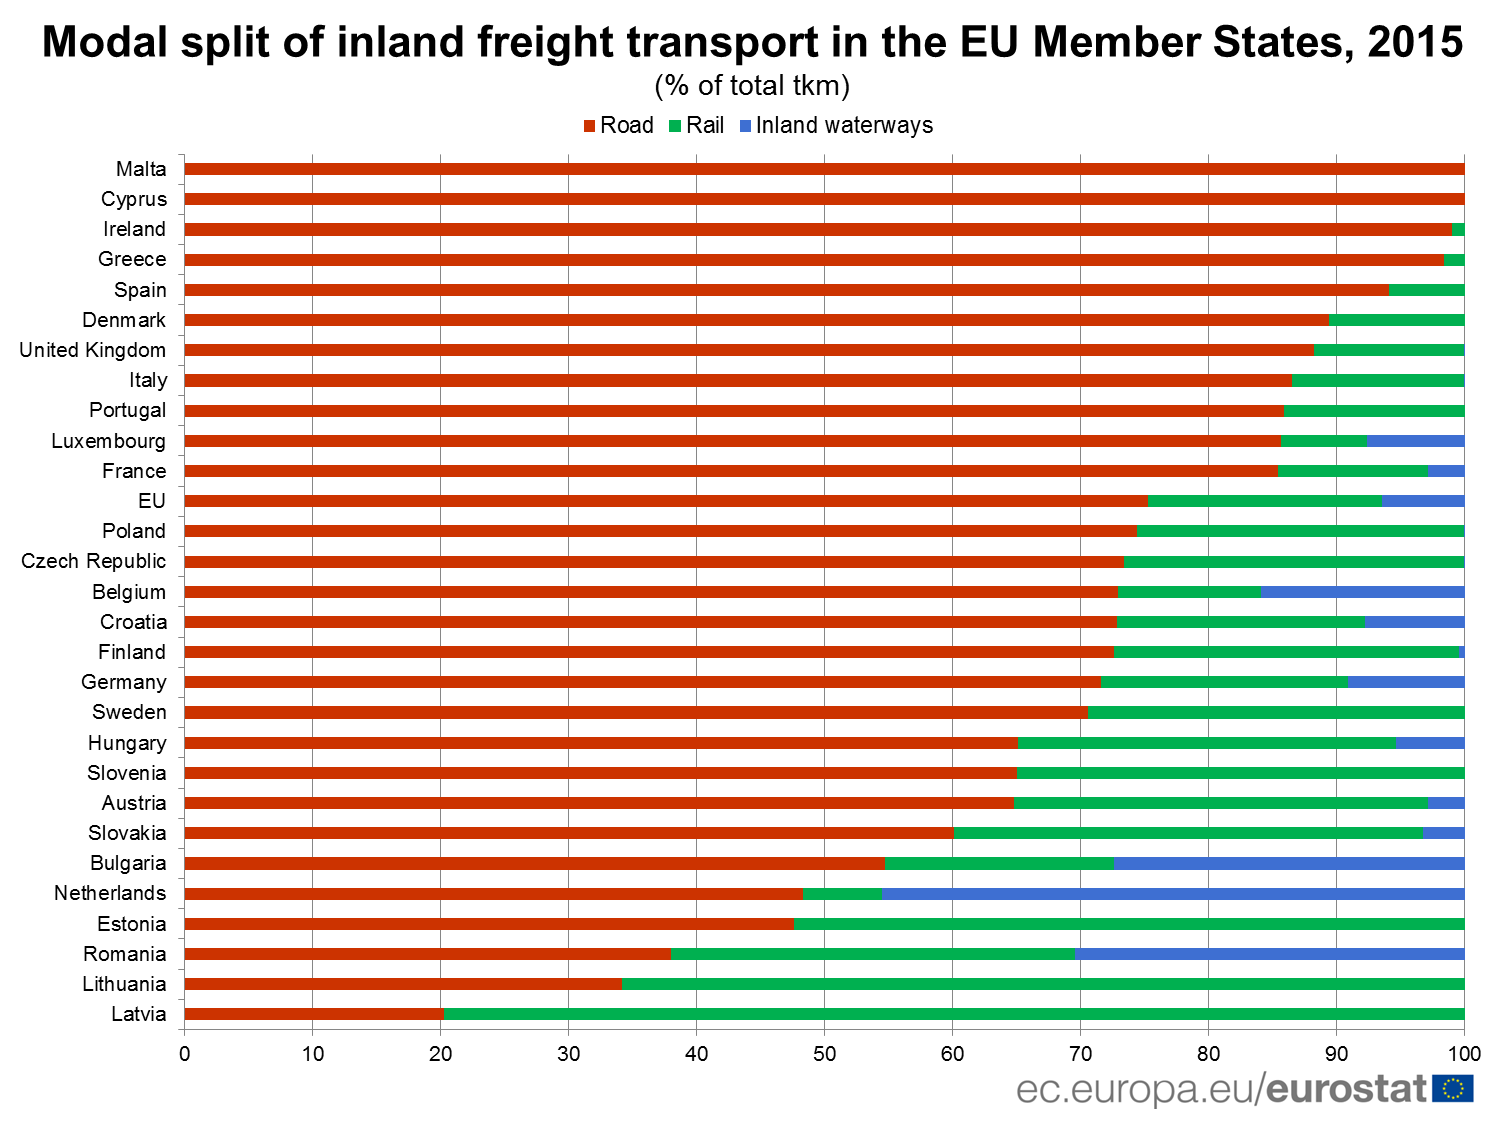 Modal split of inland freight transport in the EU Member States, 2015